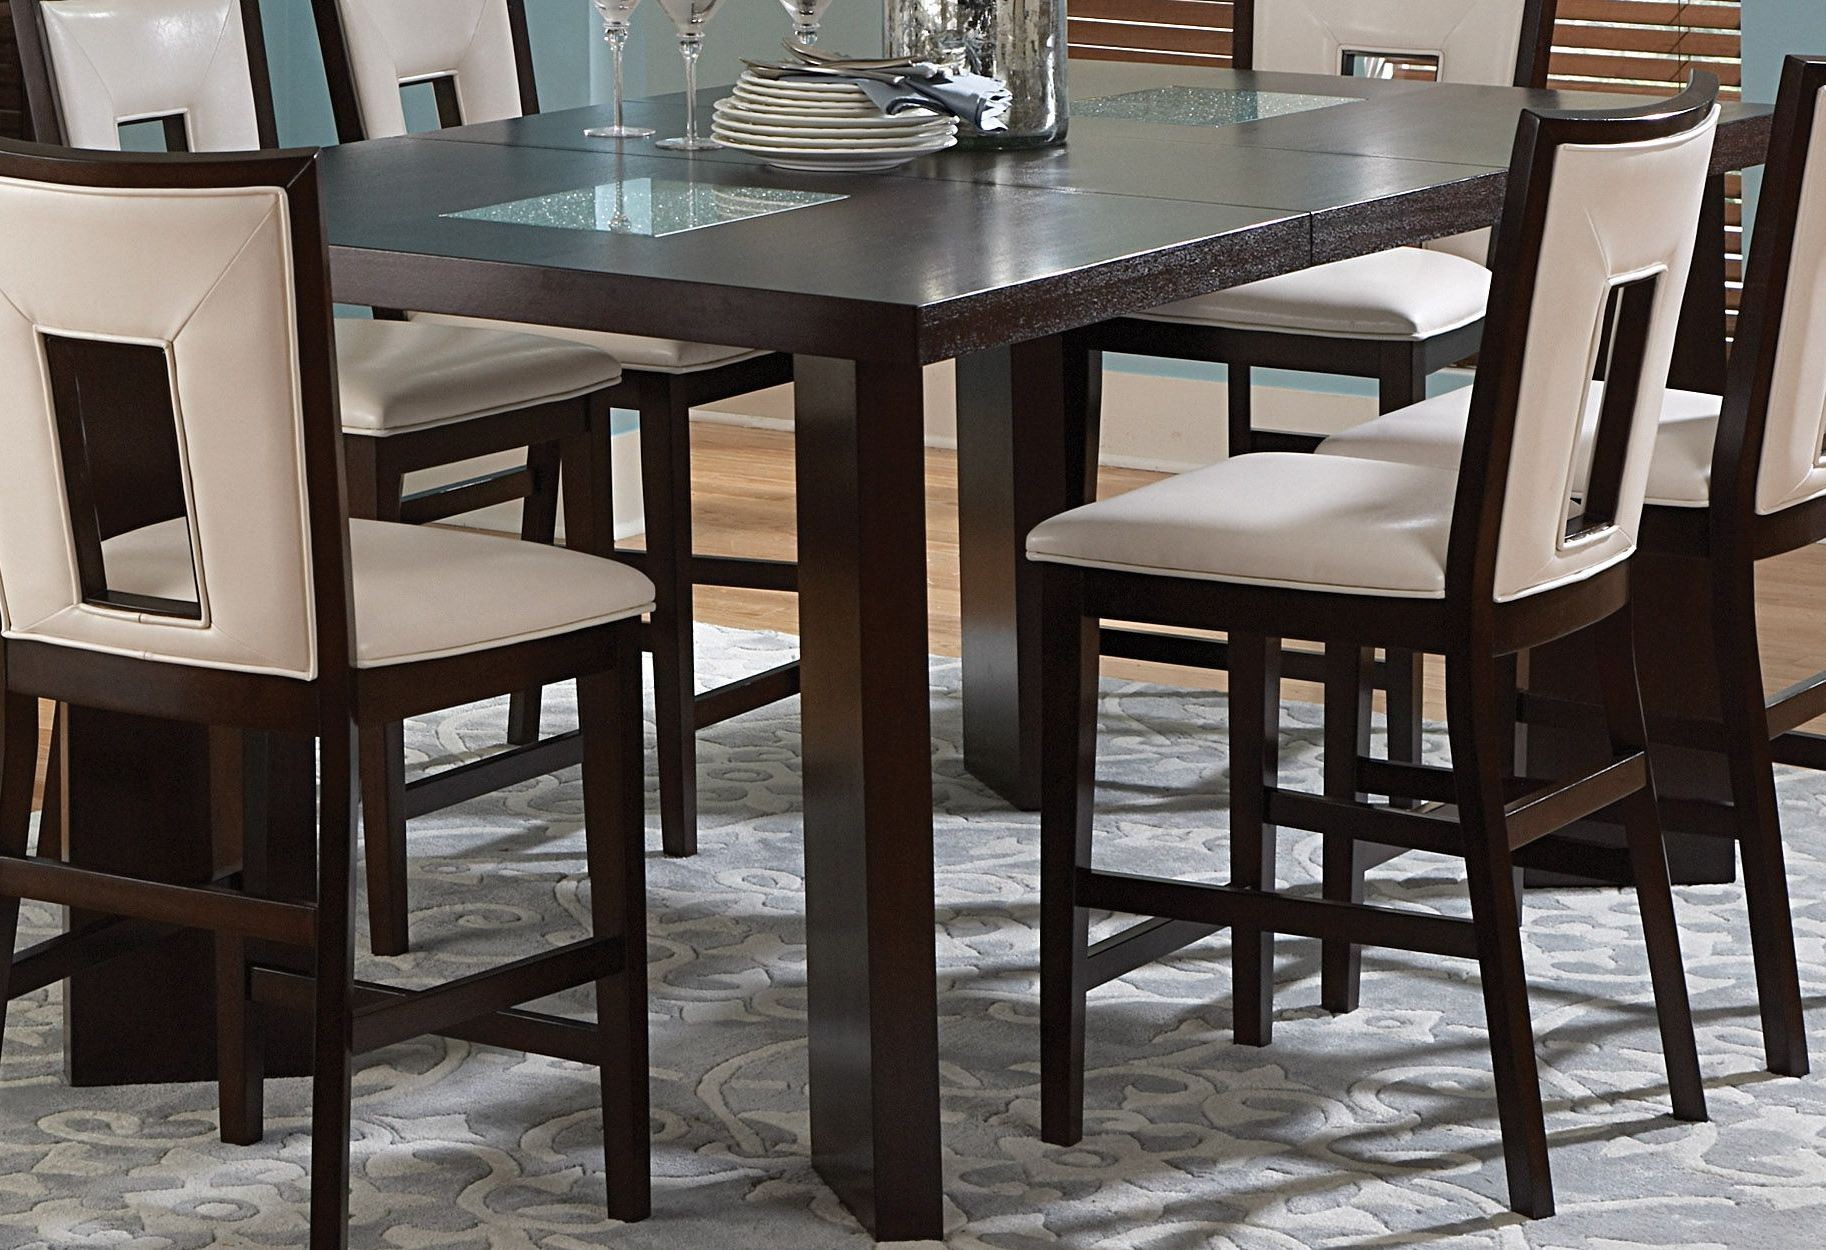 Delano Espresso Cherry Extendable Counter Height Dining Regarding Most Up To Date Overstreet Bar Height Dining Tables (View 4 of 15)